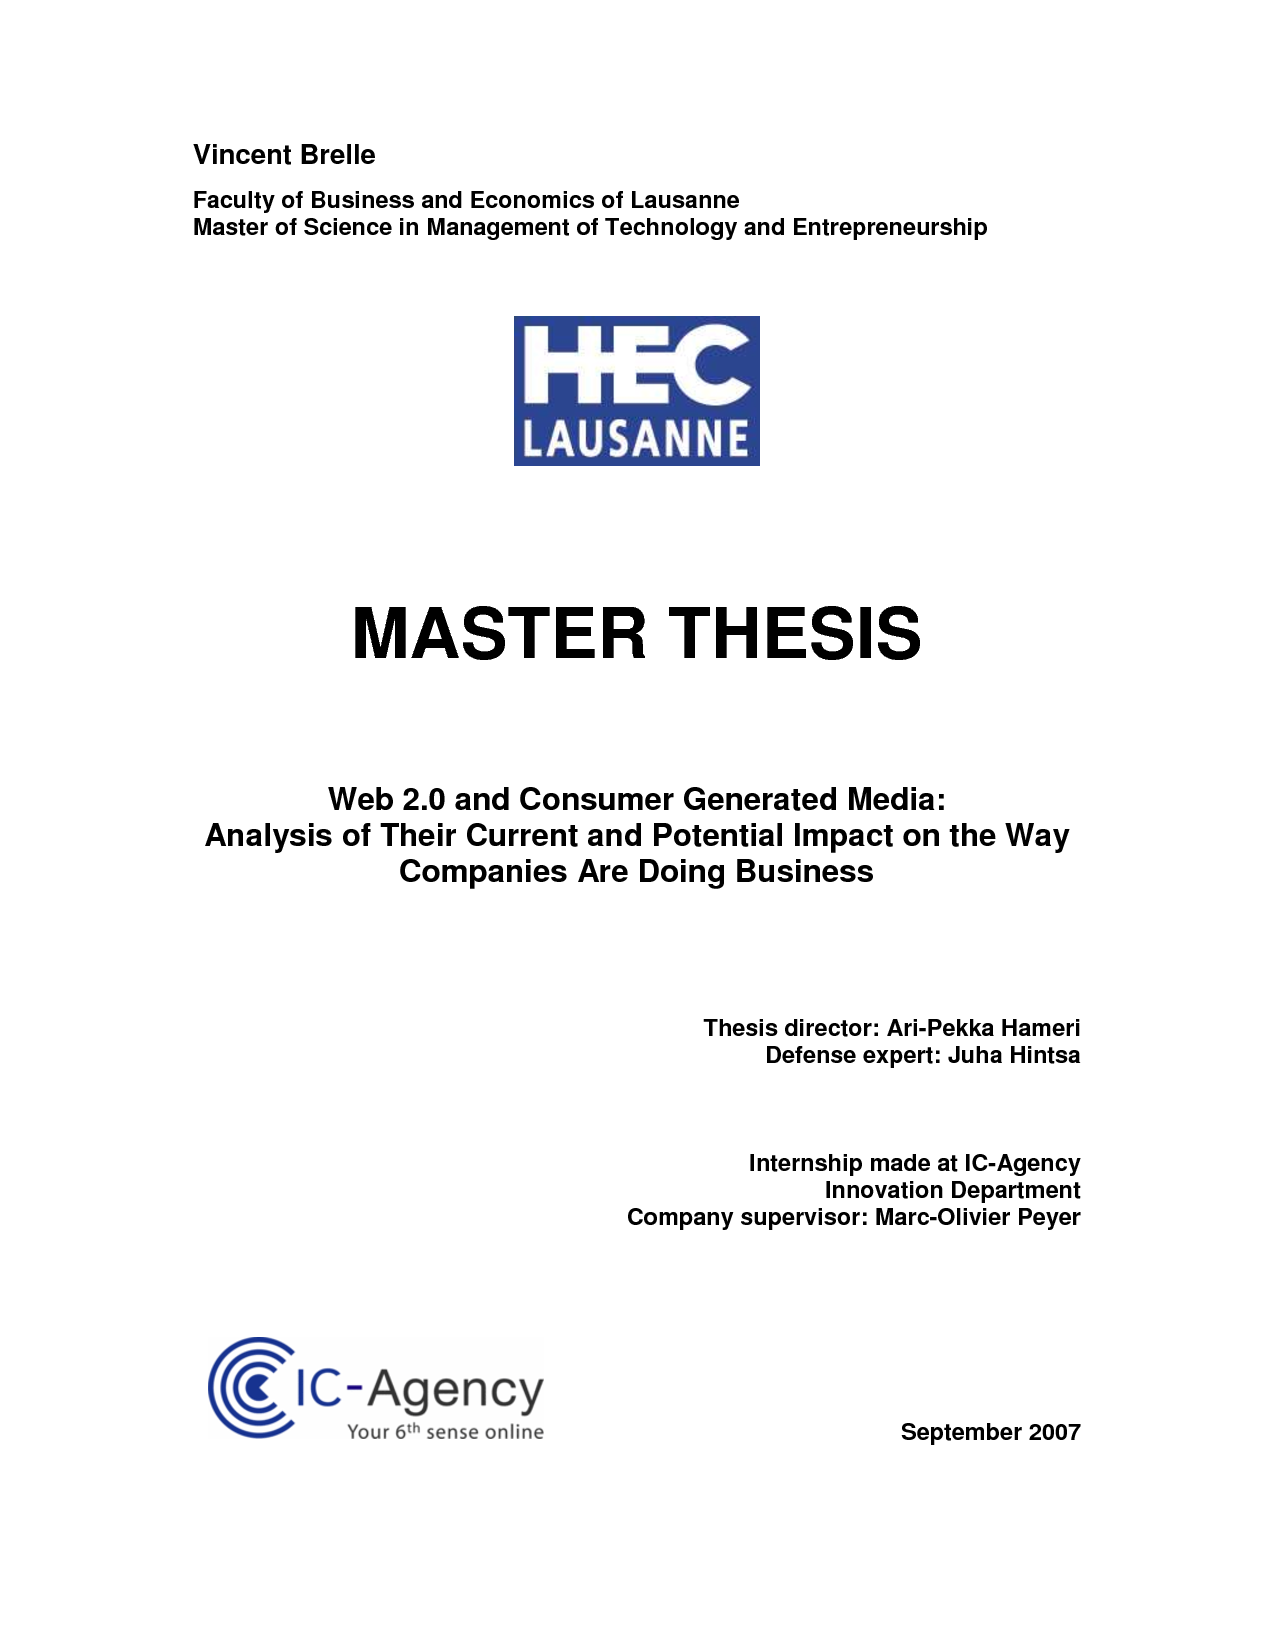 Master thesis stages